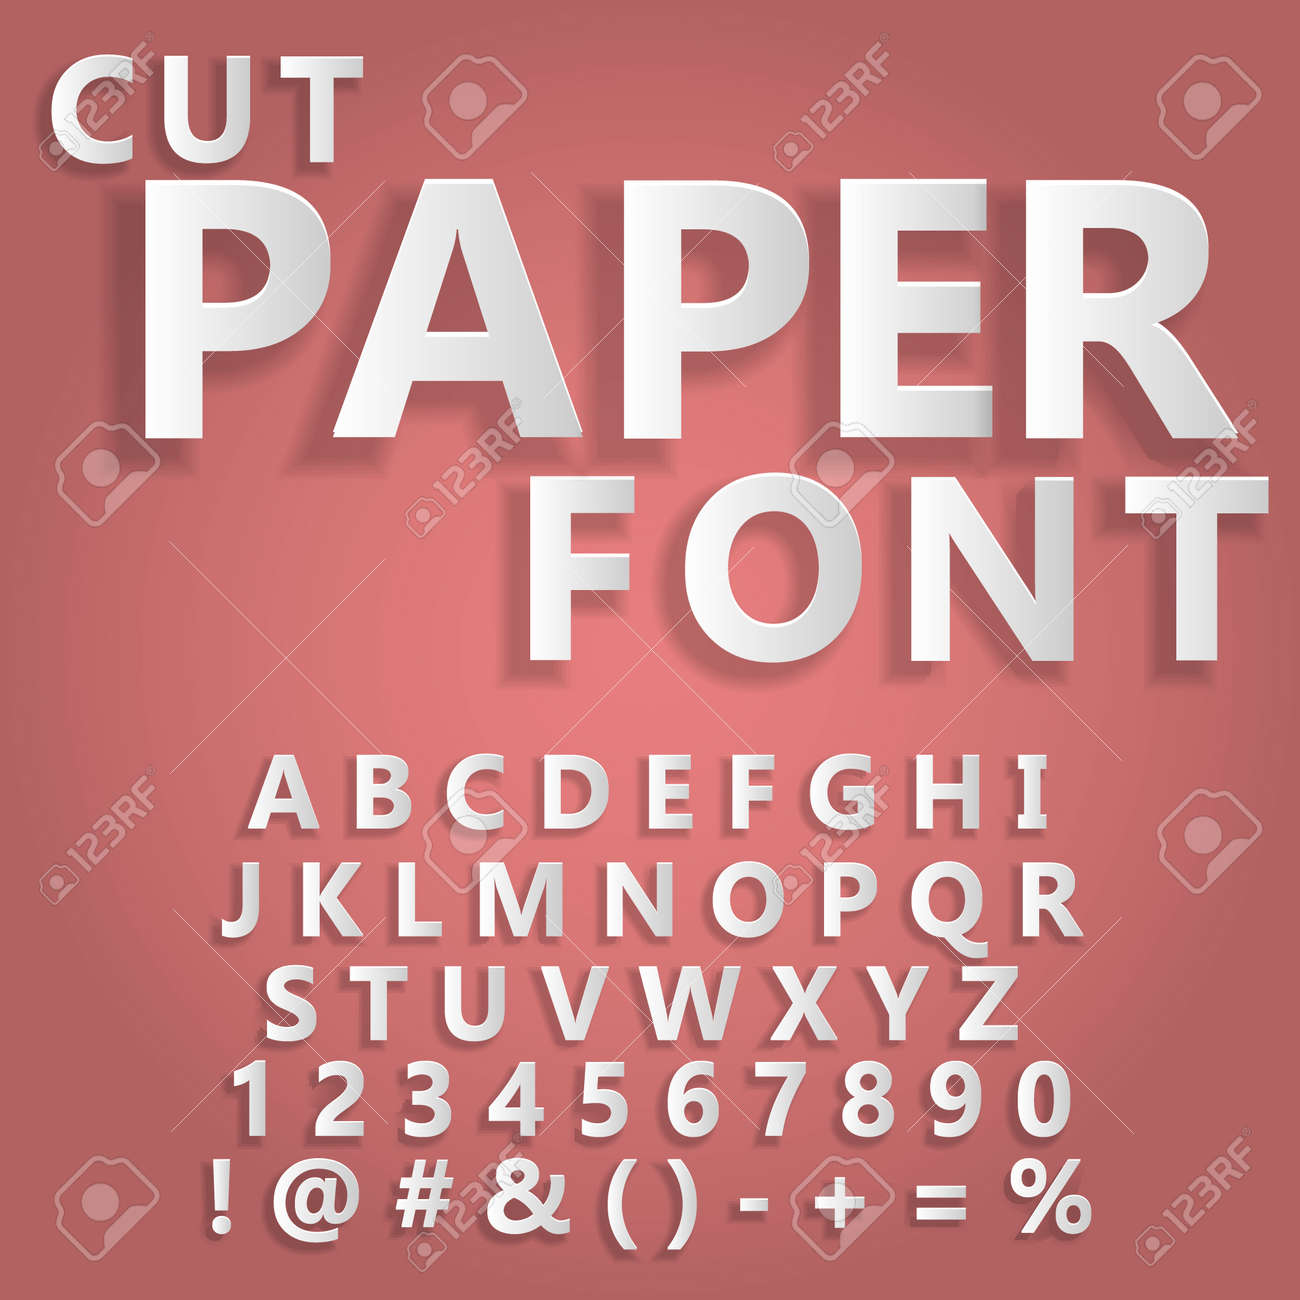 Floating cut paper letters and numbers of the alphabet on a light background, paper art style Template for your design - 168873074